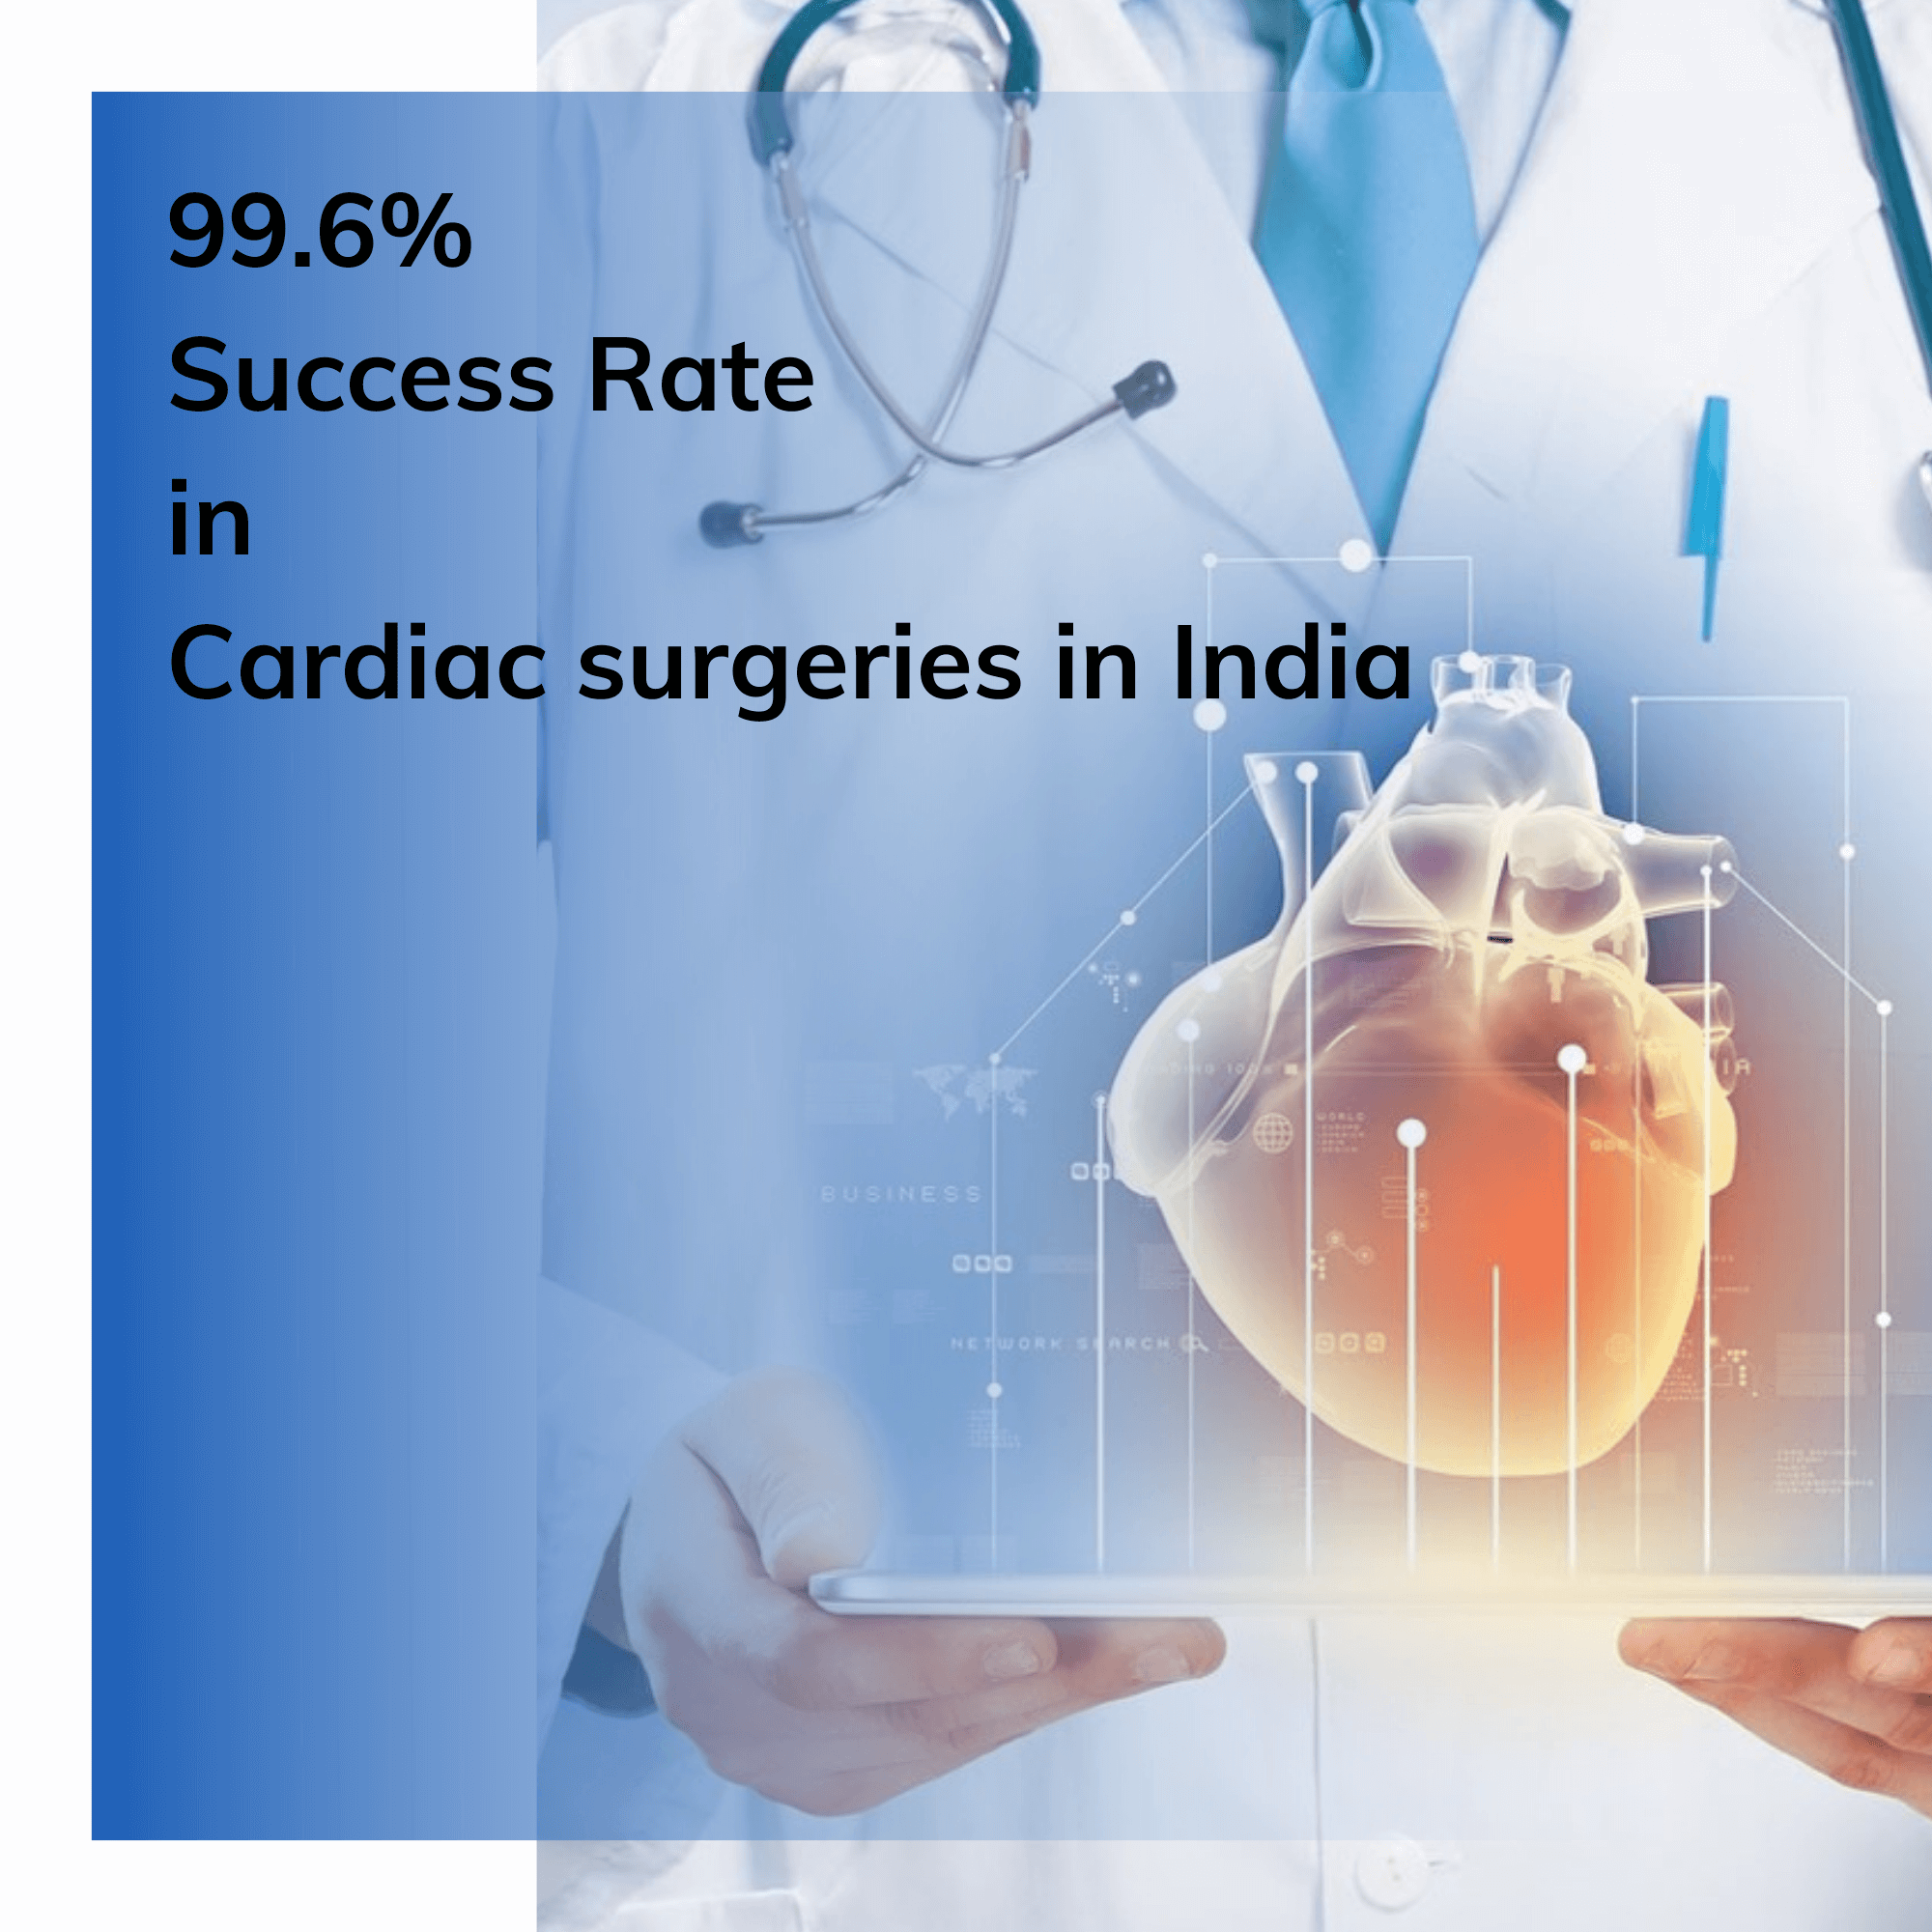 Cardiology-Treatment-in-India